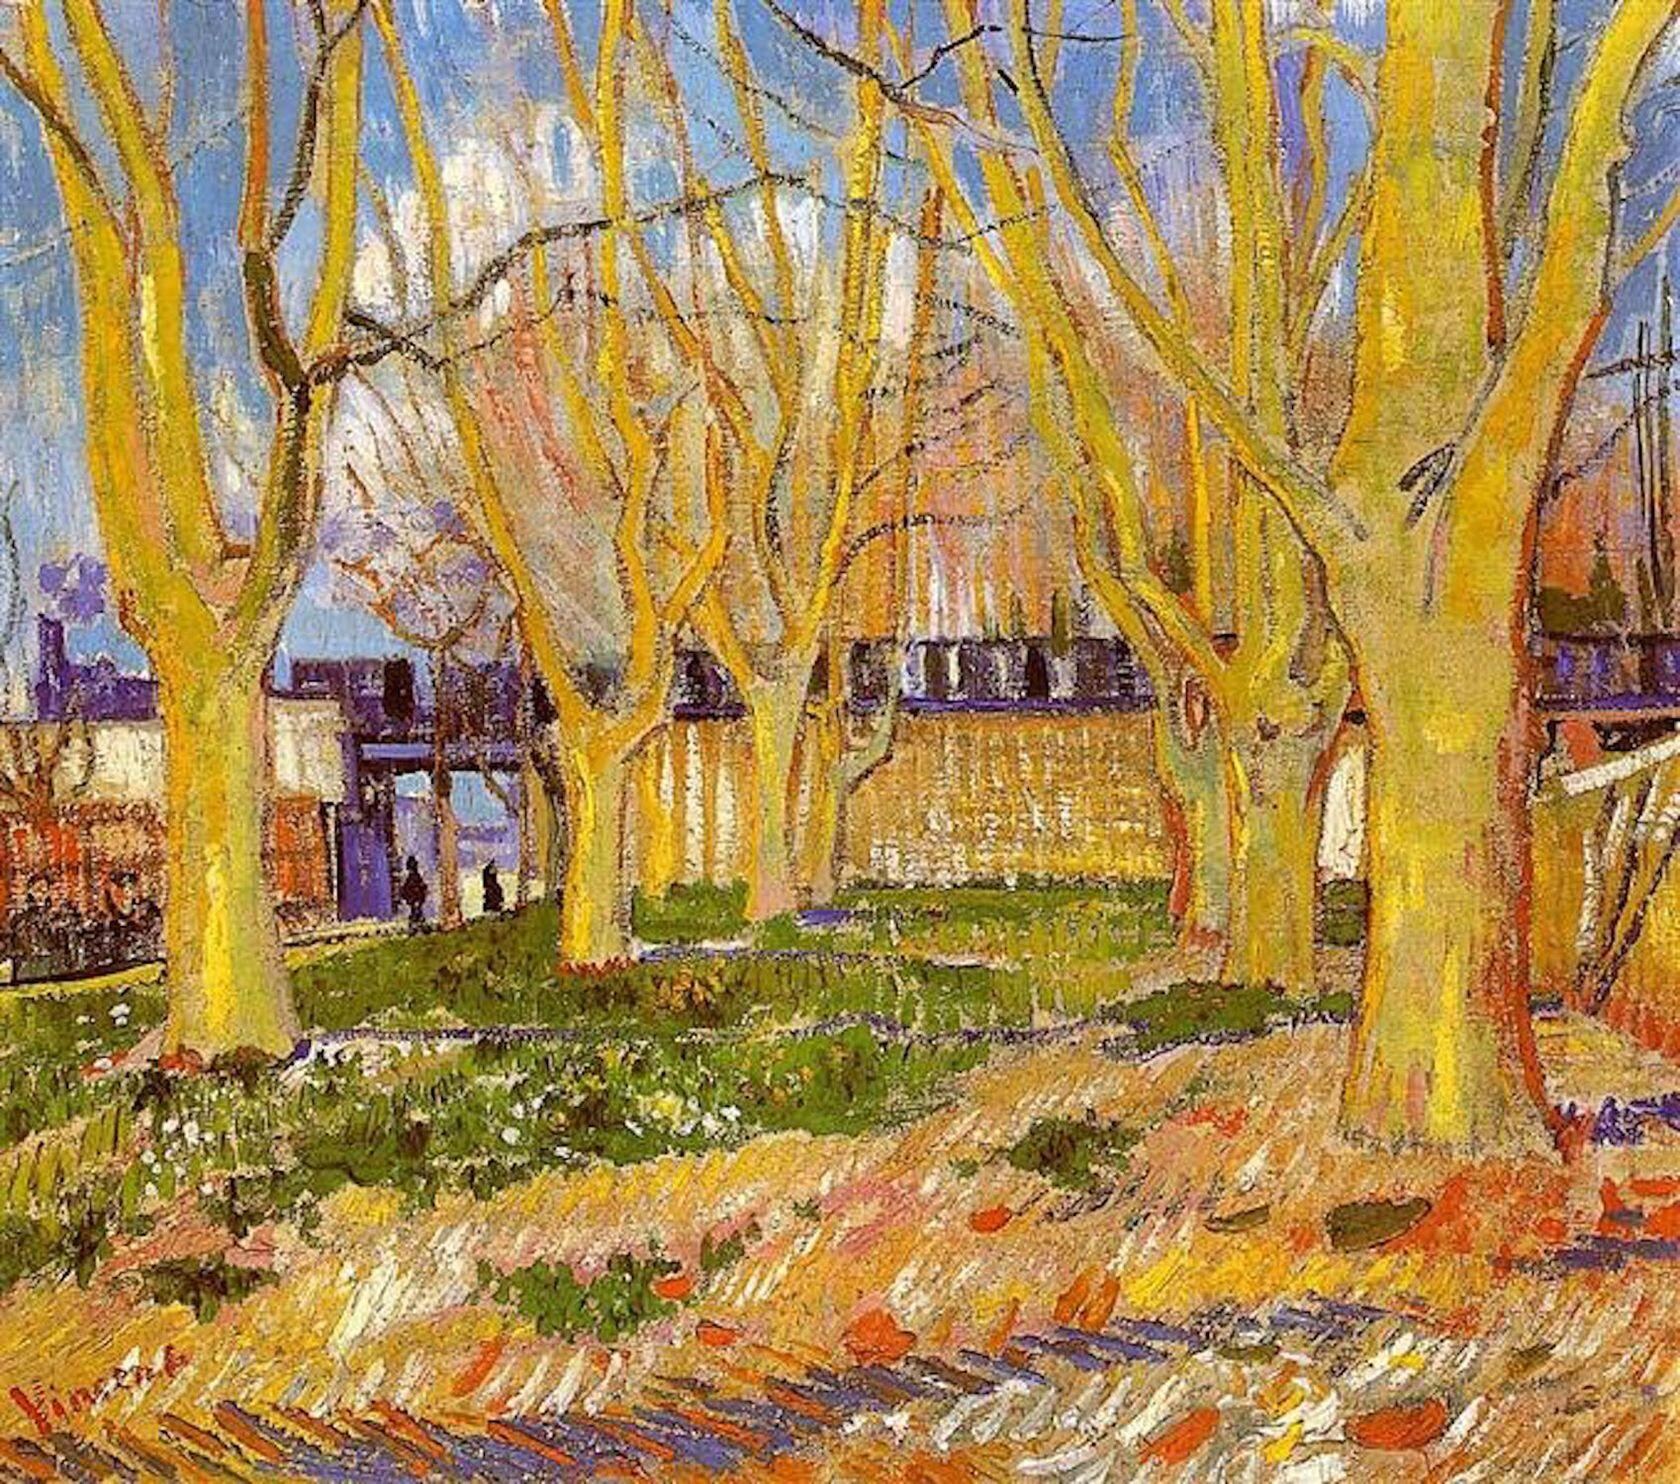 Vincent Van Gogh avenue-of-plane-trees-near-arles-station